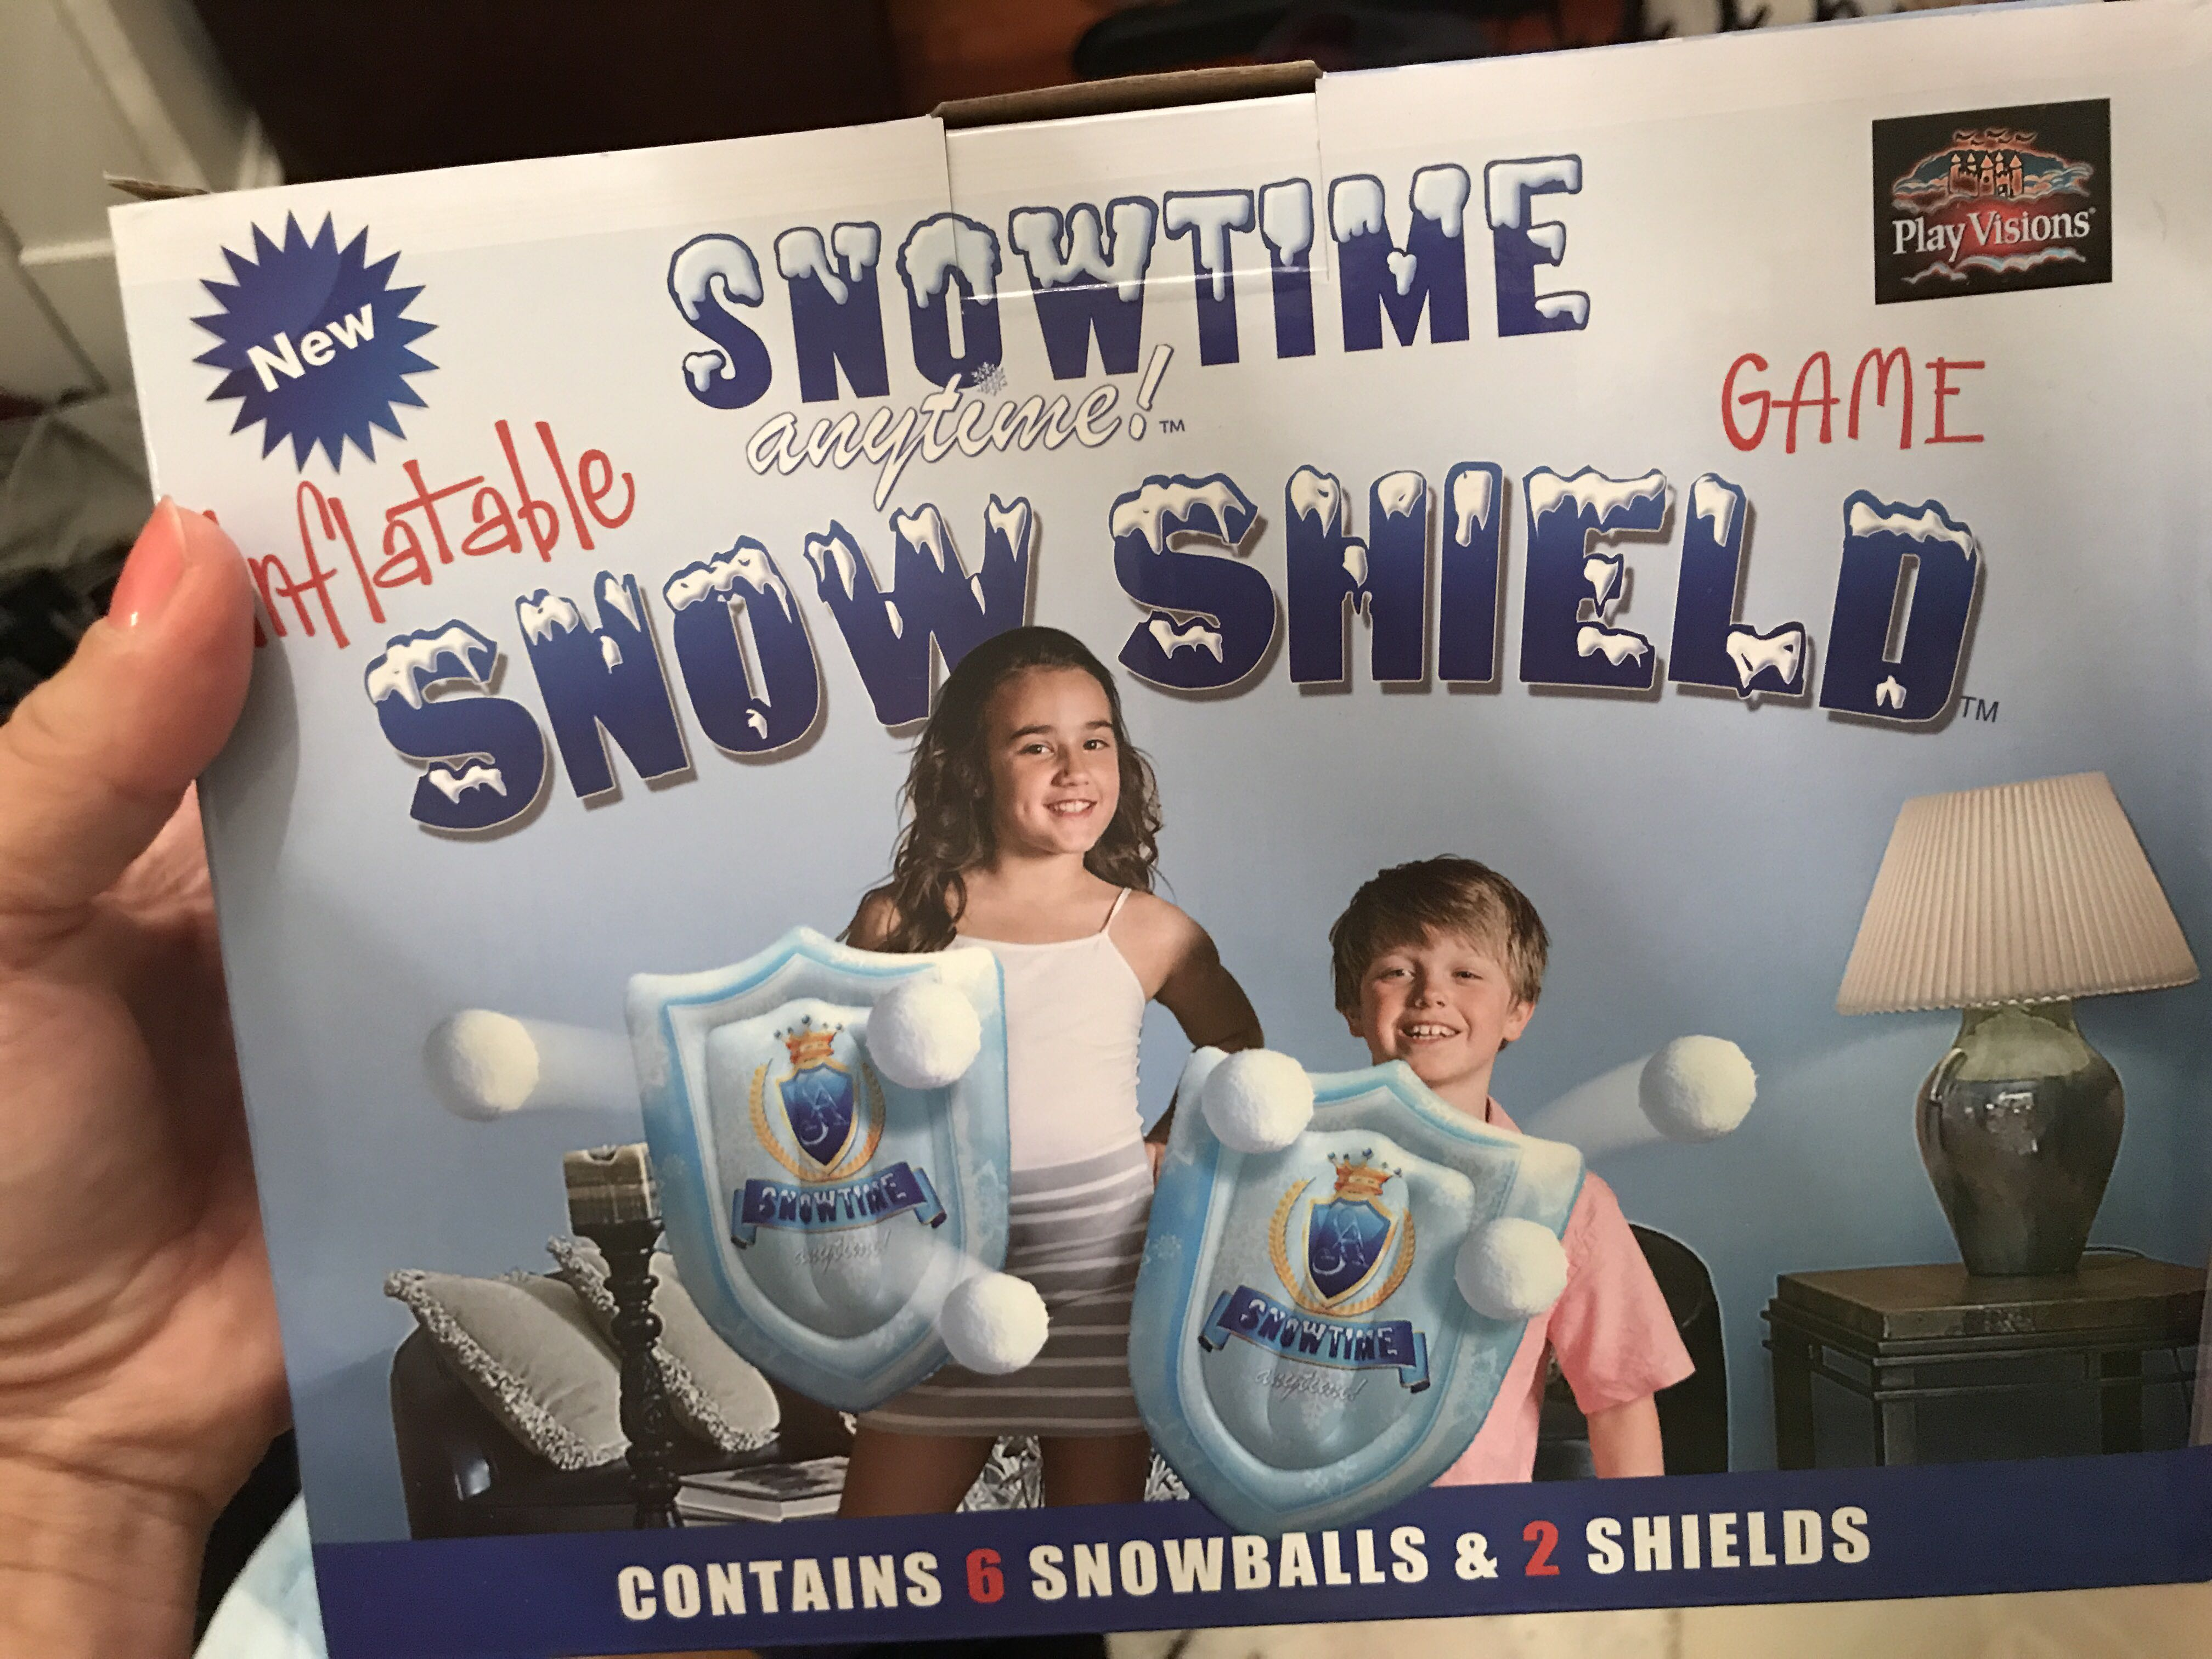 Snow Shield game with 30 extra snowballs ... sold as set ... $20 (over $50 new)